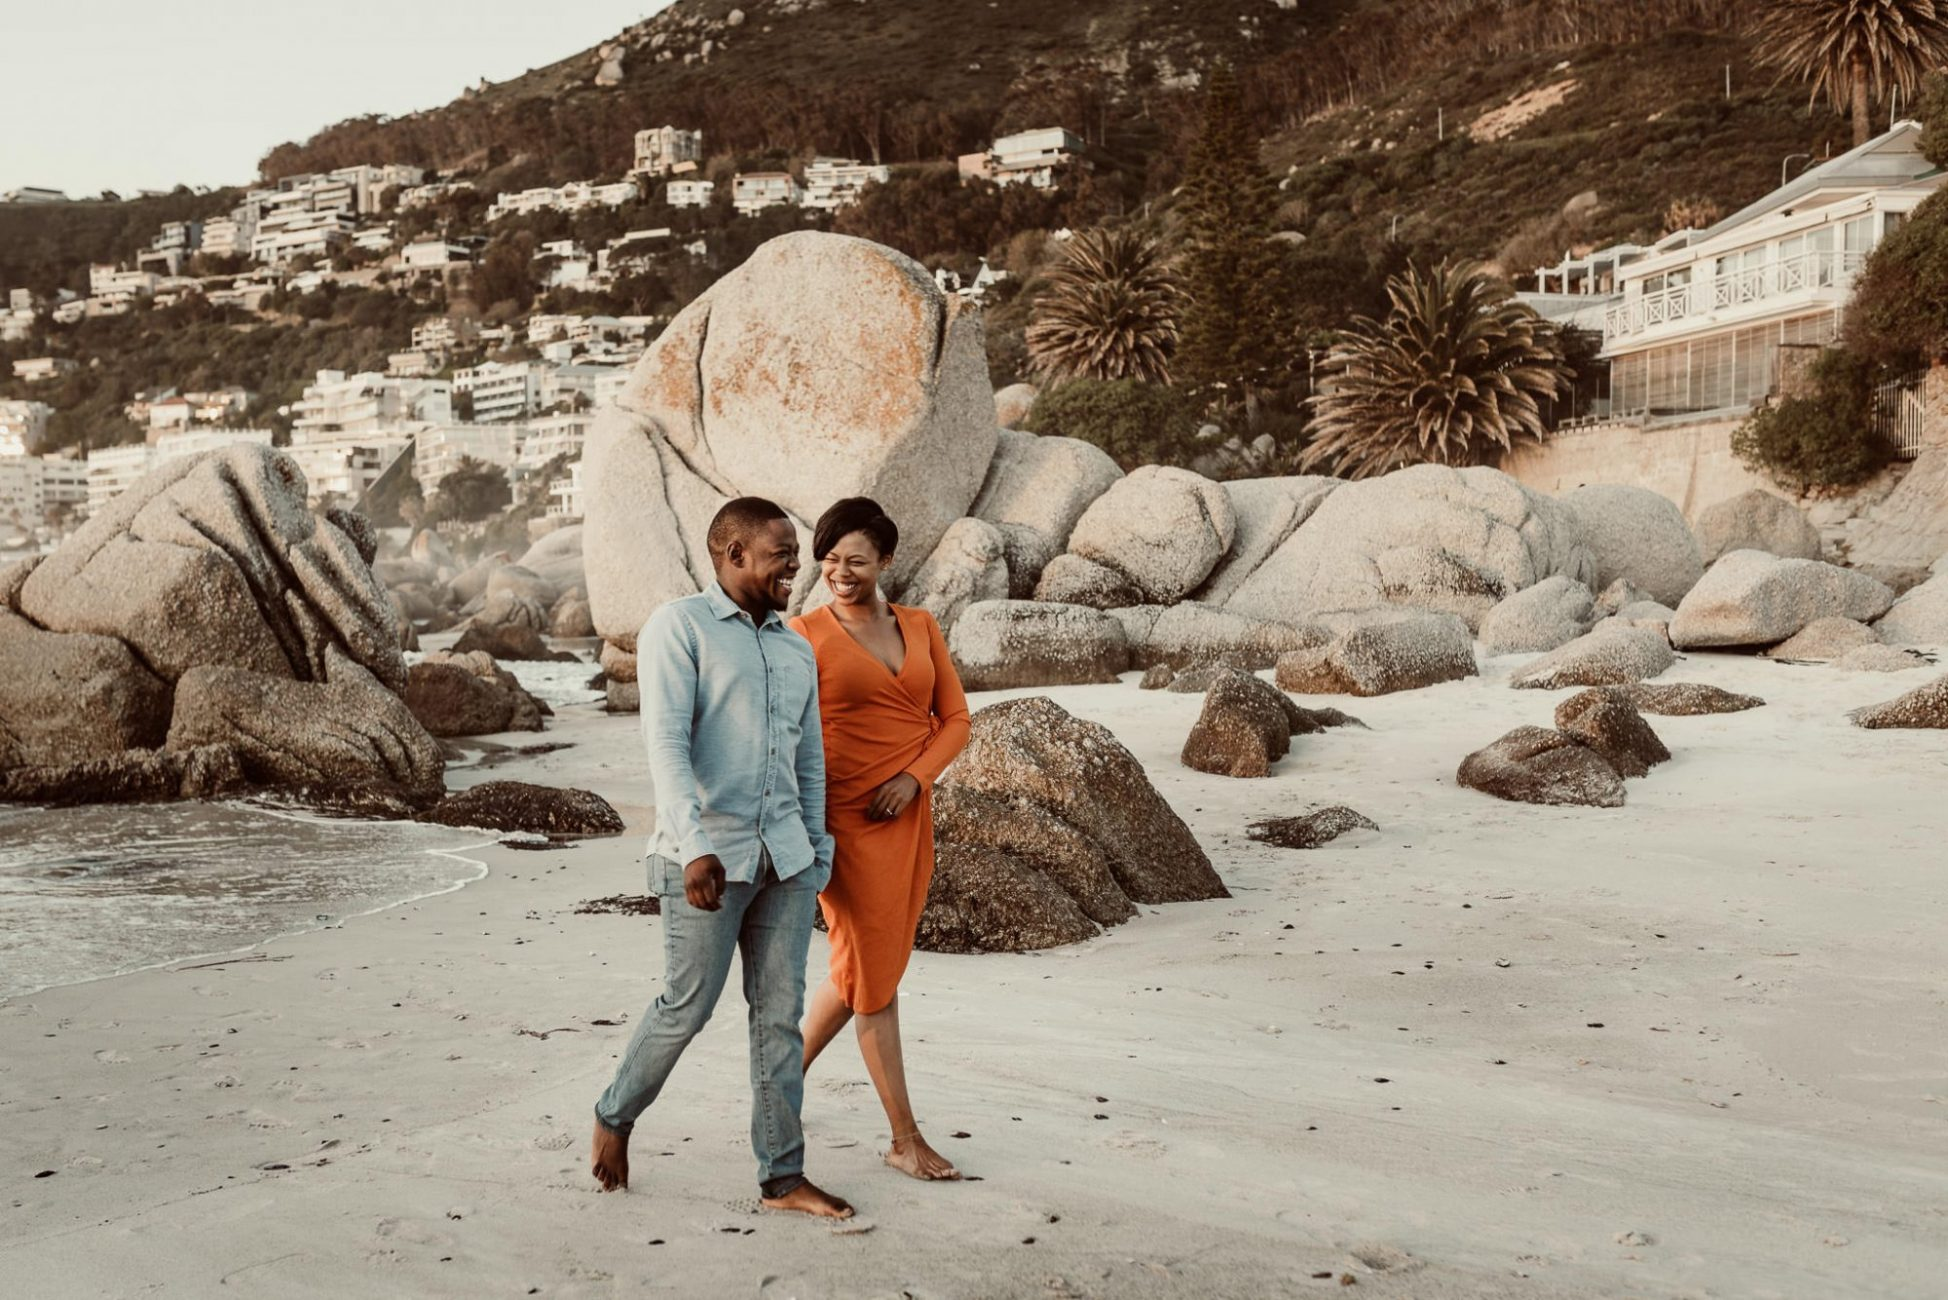 clifton_beach_engagement_cape_town_thabang_william_walking_laughing